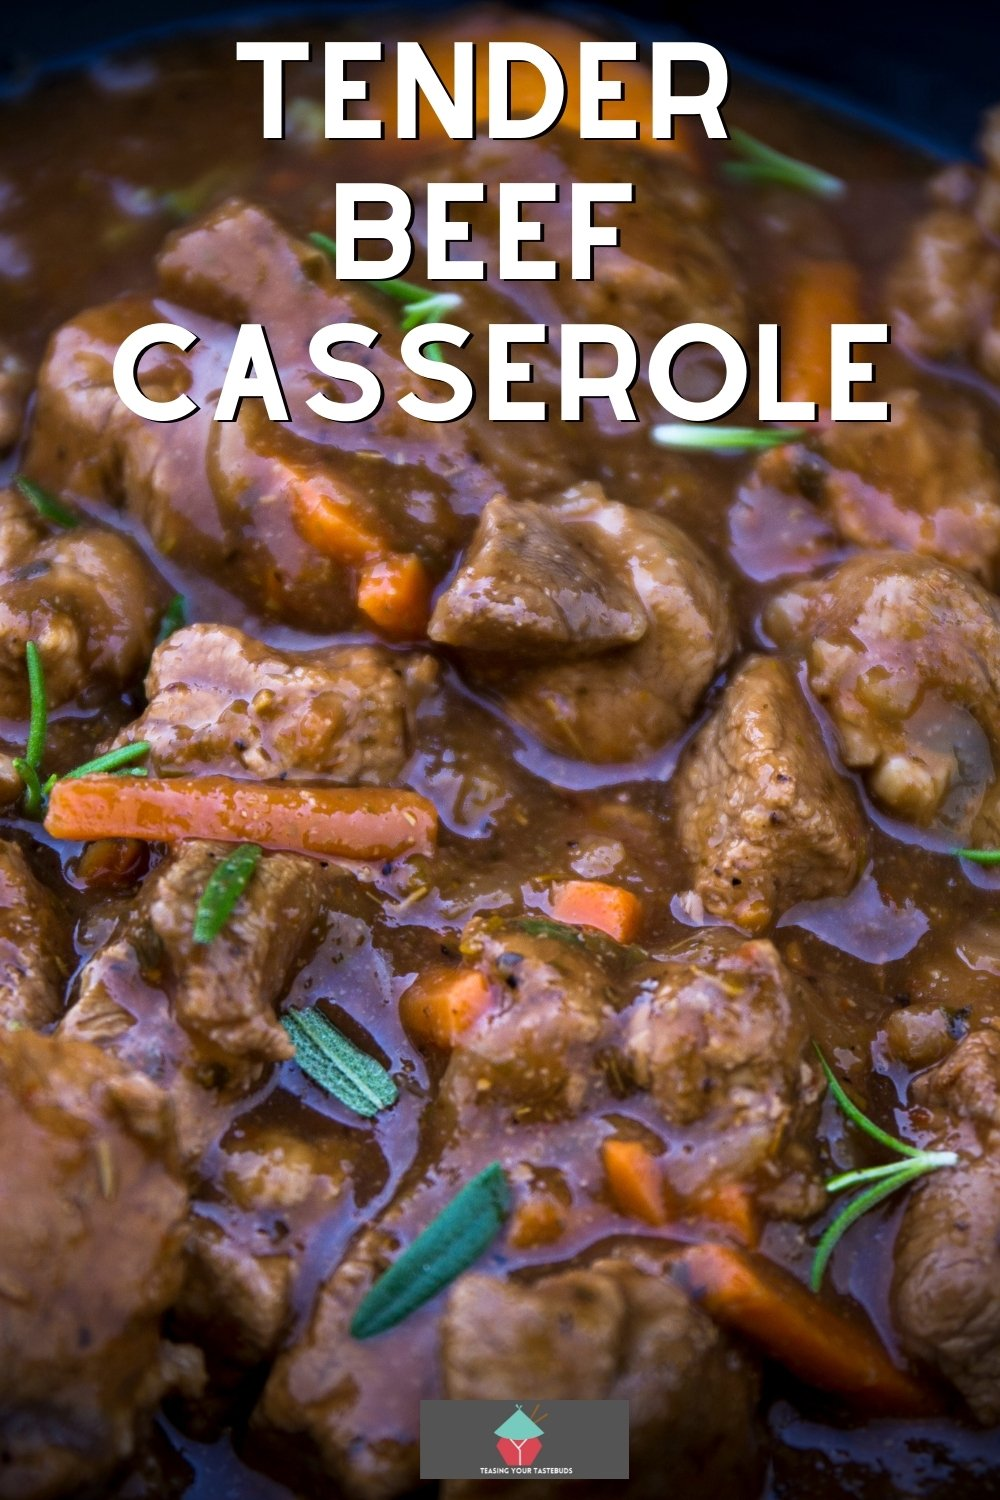 Tender Beef Casserole. Homemade delicious tender beef casserole, using fresh ingredients, full of flavor. Recipe for stove top, oven, slow cooker. A perfect dinner on a cold day!